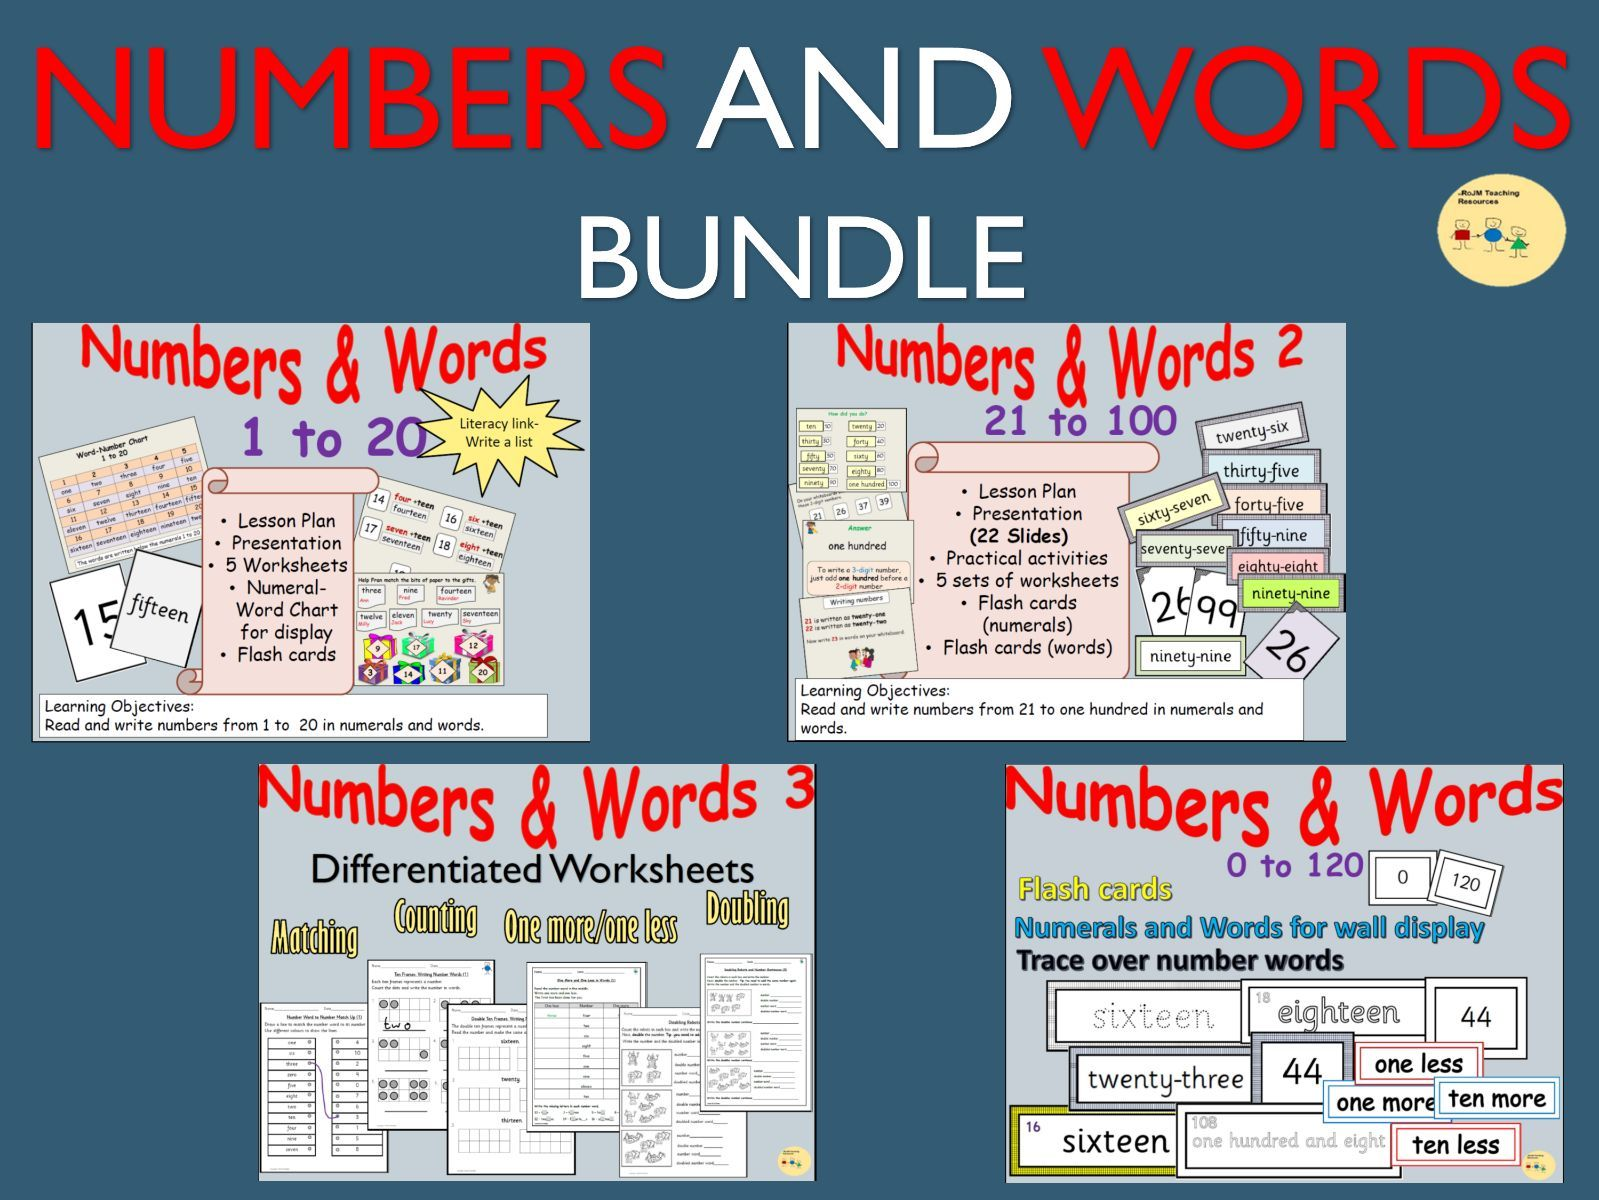 Numbers and Number Words, Lesson Plans, Presentations, Worksheets  on Listing, Counting, Doubling, Matching Up, Practical Activities BUNDLE